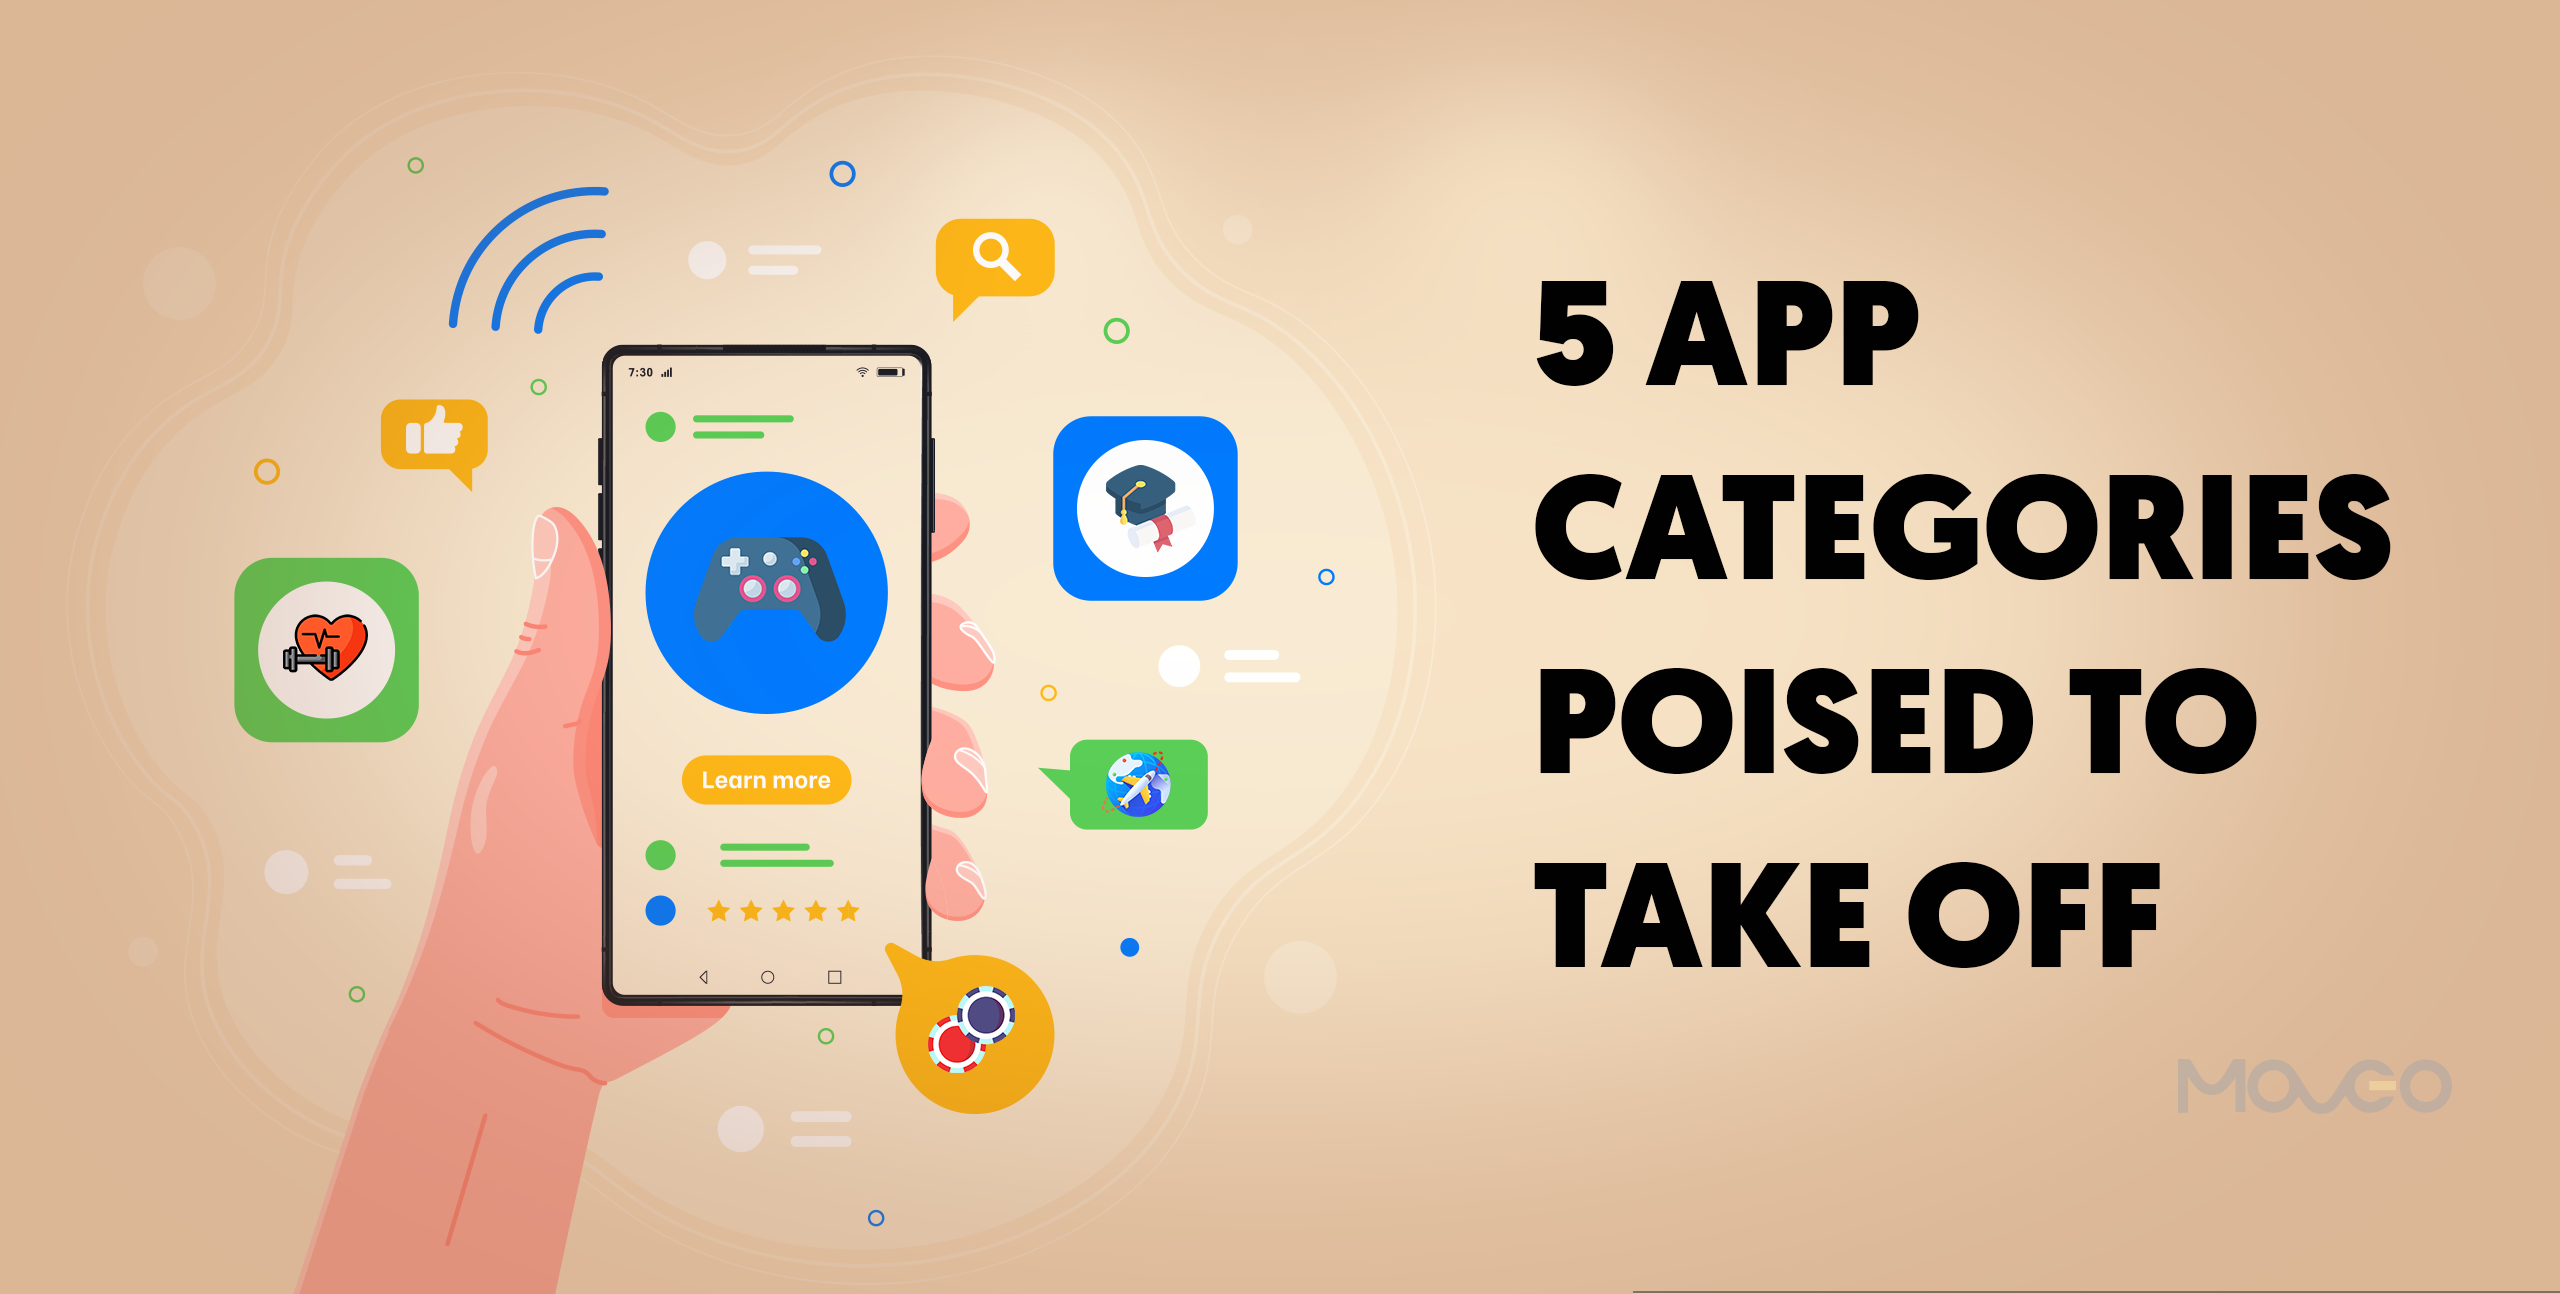 5 app categories poised to take off